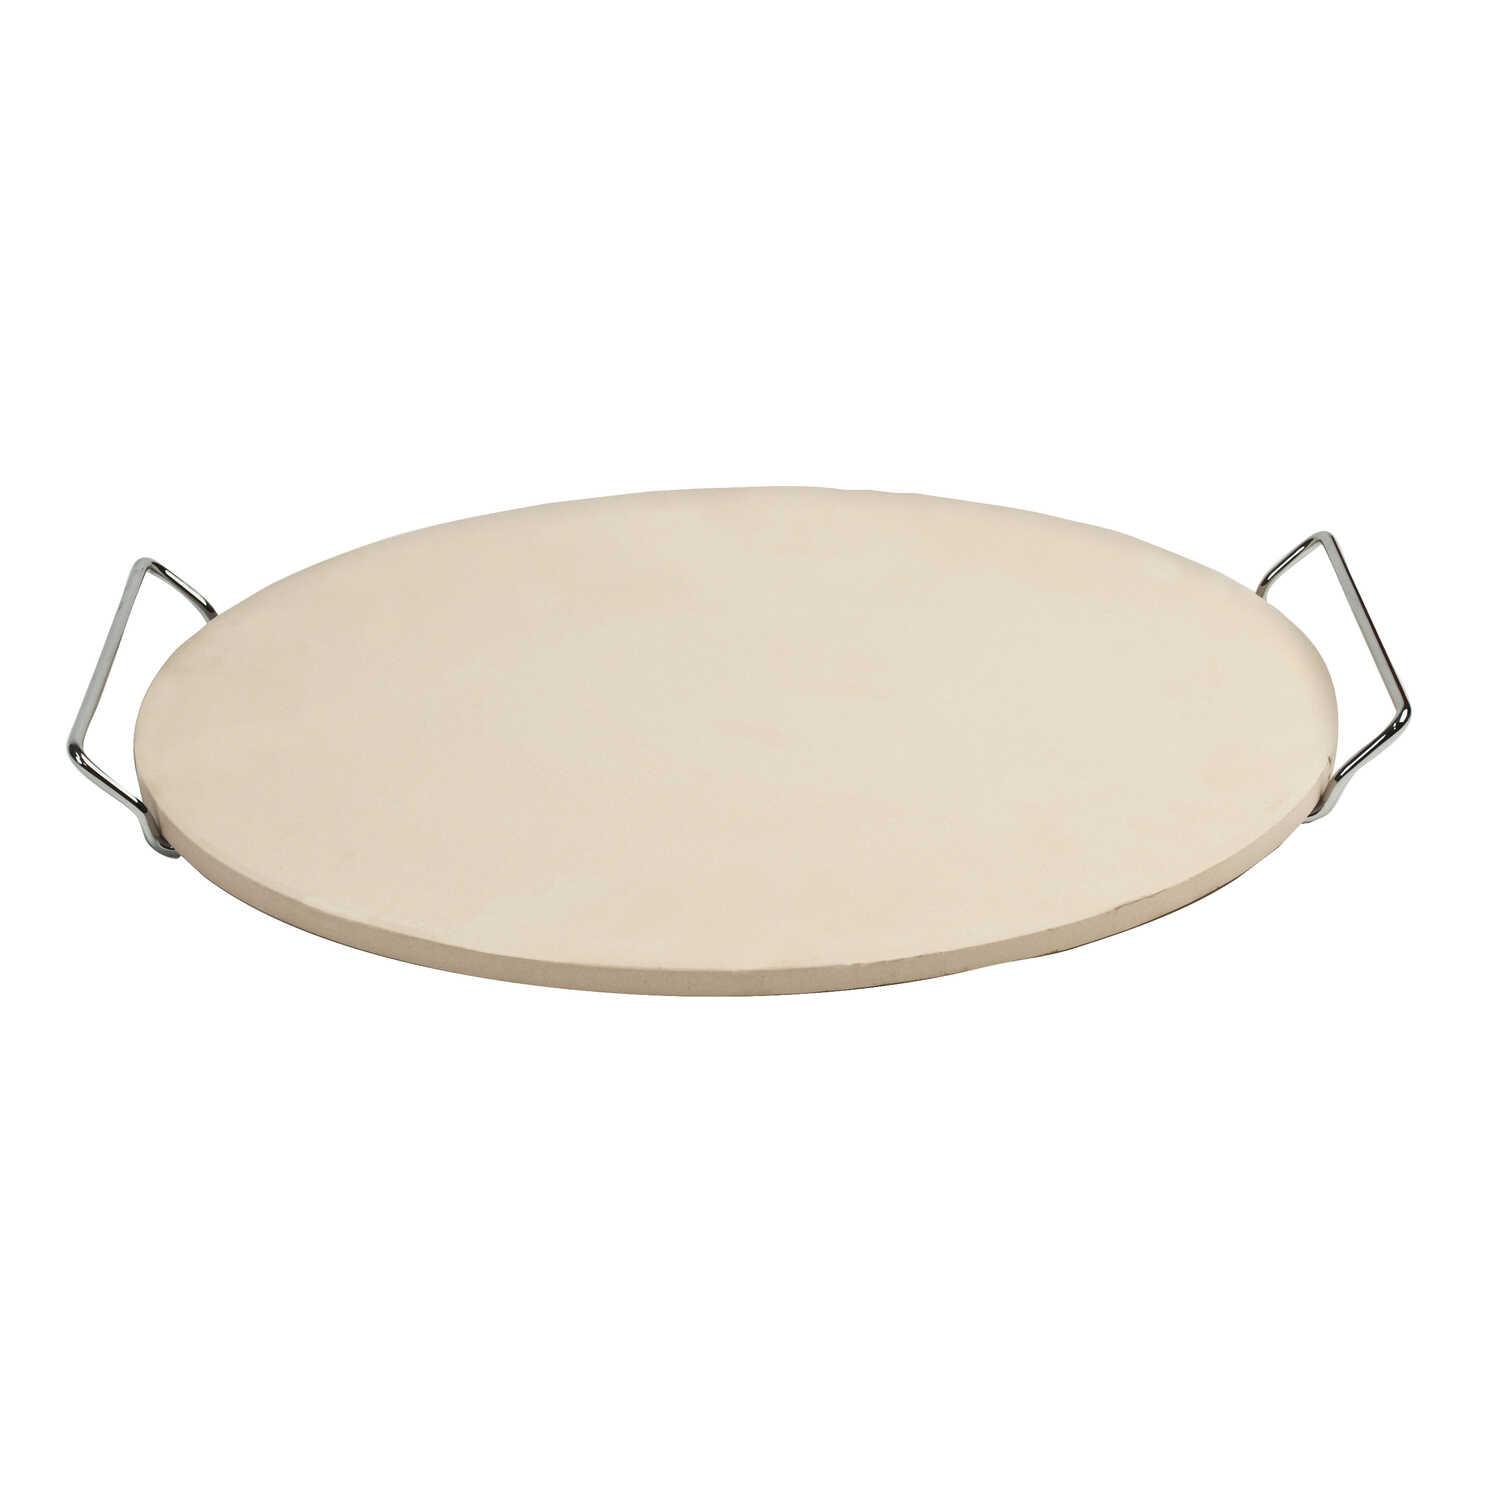 Pizzacraft  15 in. W x 15 in. L Natural  Pizza Stone